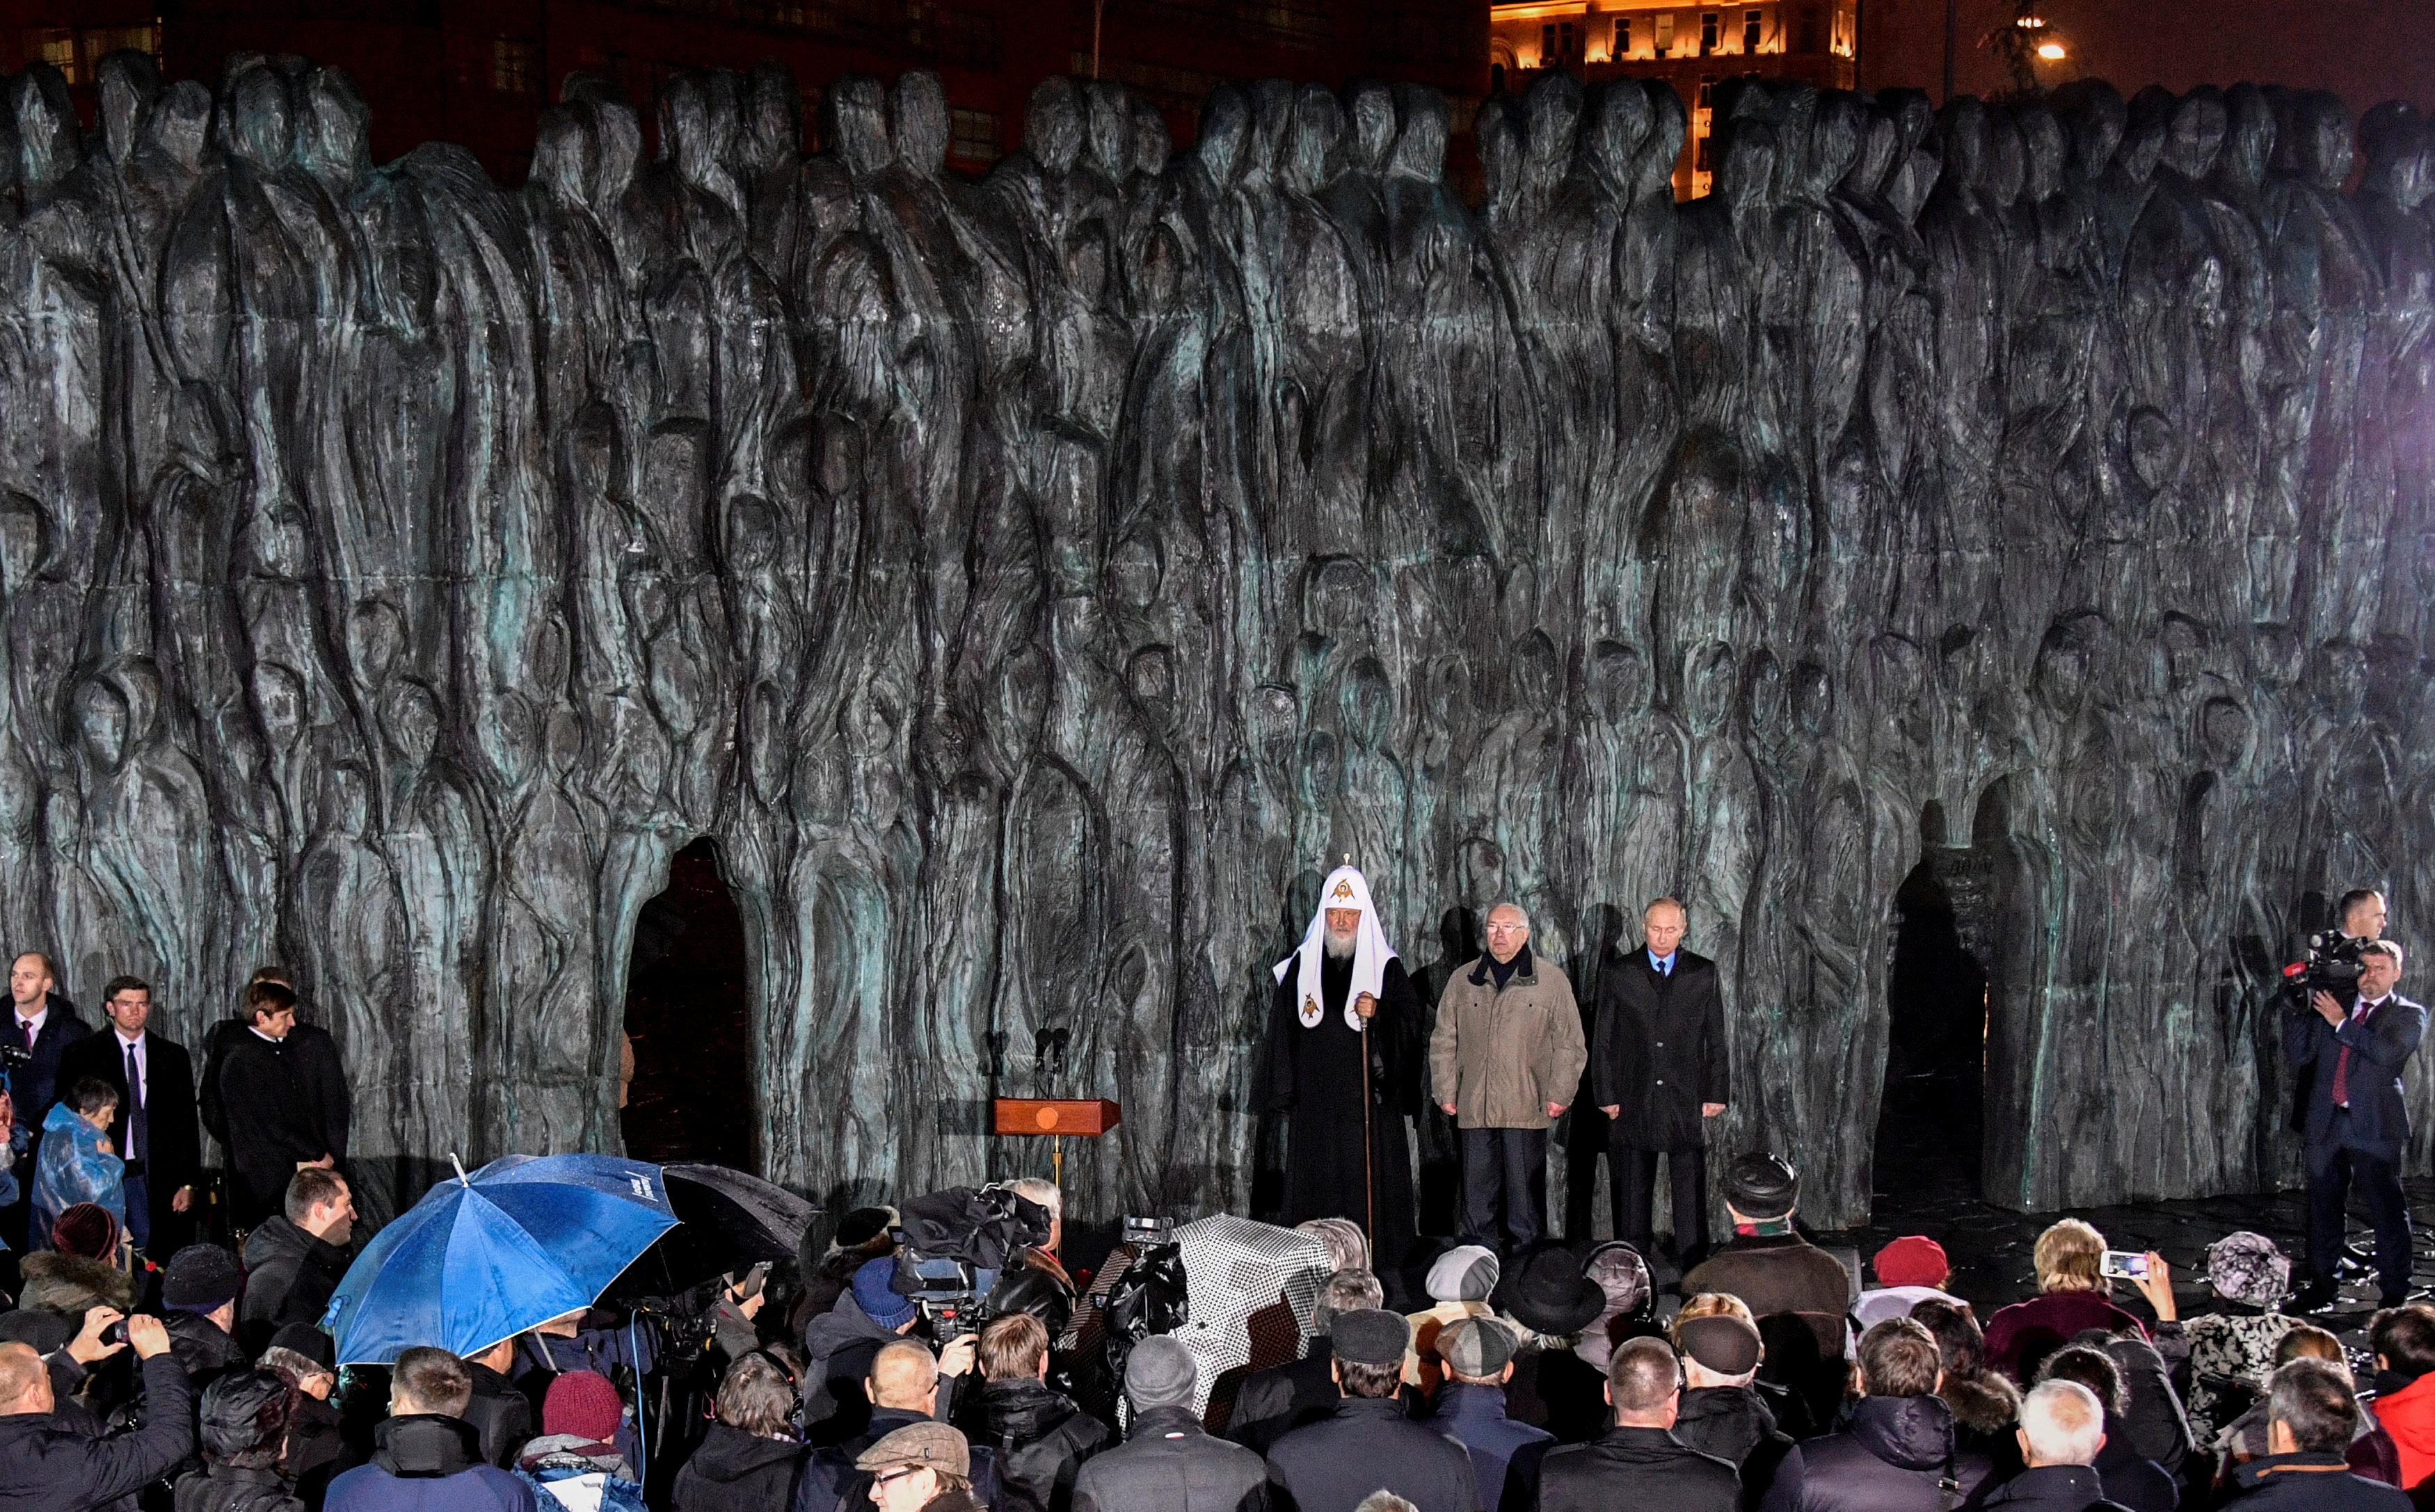 """Russian President Vladimir Putin with Patriarch Kirill, the head of the Russian Orthodox Church, and former Human Rights Ombudsman Vladimir Lukin attend a ceremony unveiling the country's first national memorial to victims of Soviet-era political repressions called """"The Wall of Grief"""" in downtown Moscow, Russia October 30, 2017. REUTERS/Alexander"""